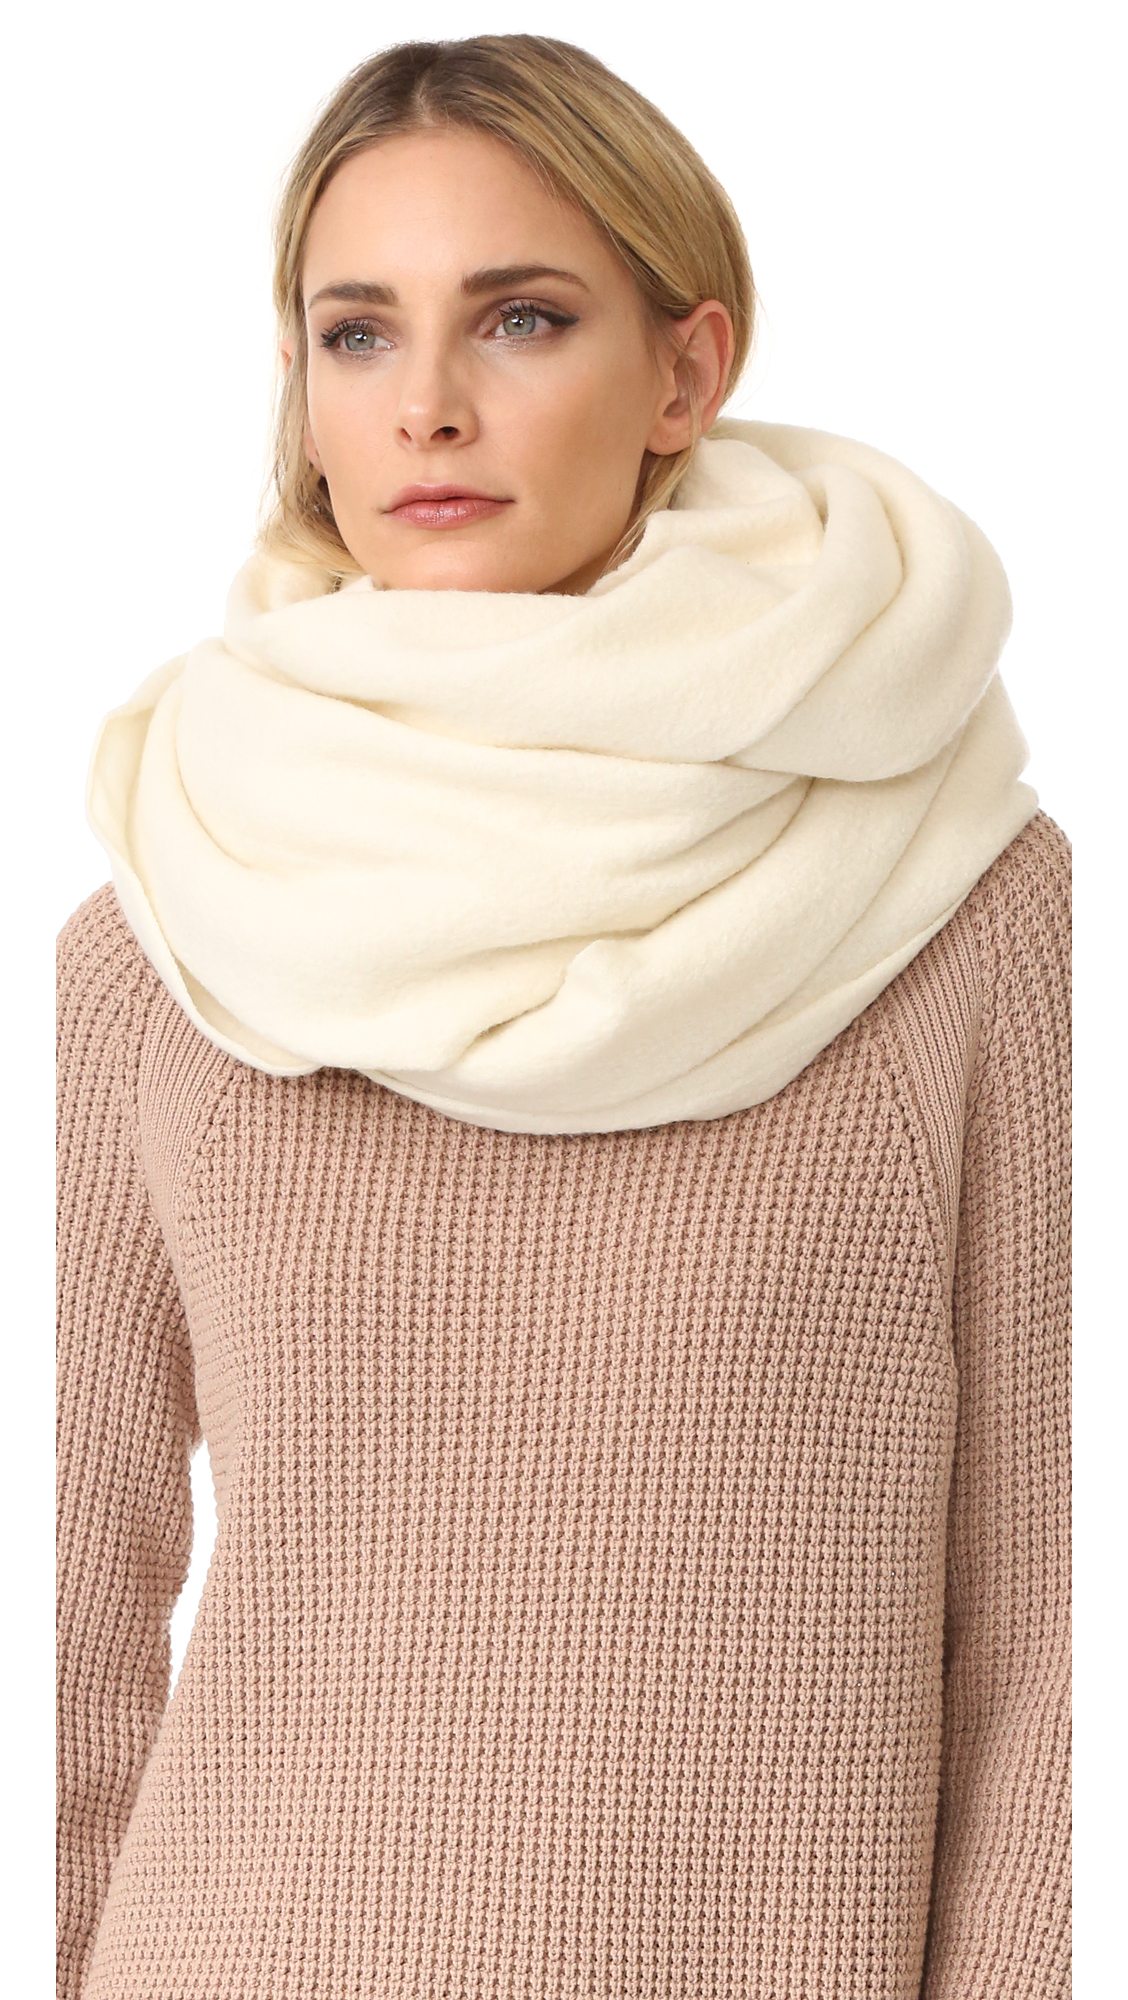 Acne Studios Milla Boiled Scarf - Off White at Shopbop